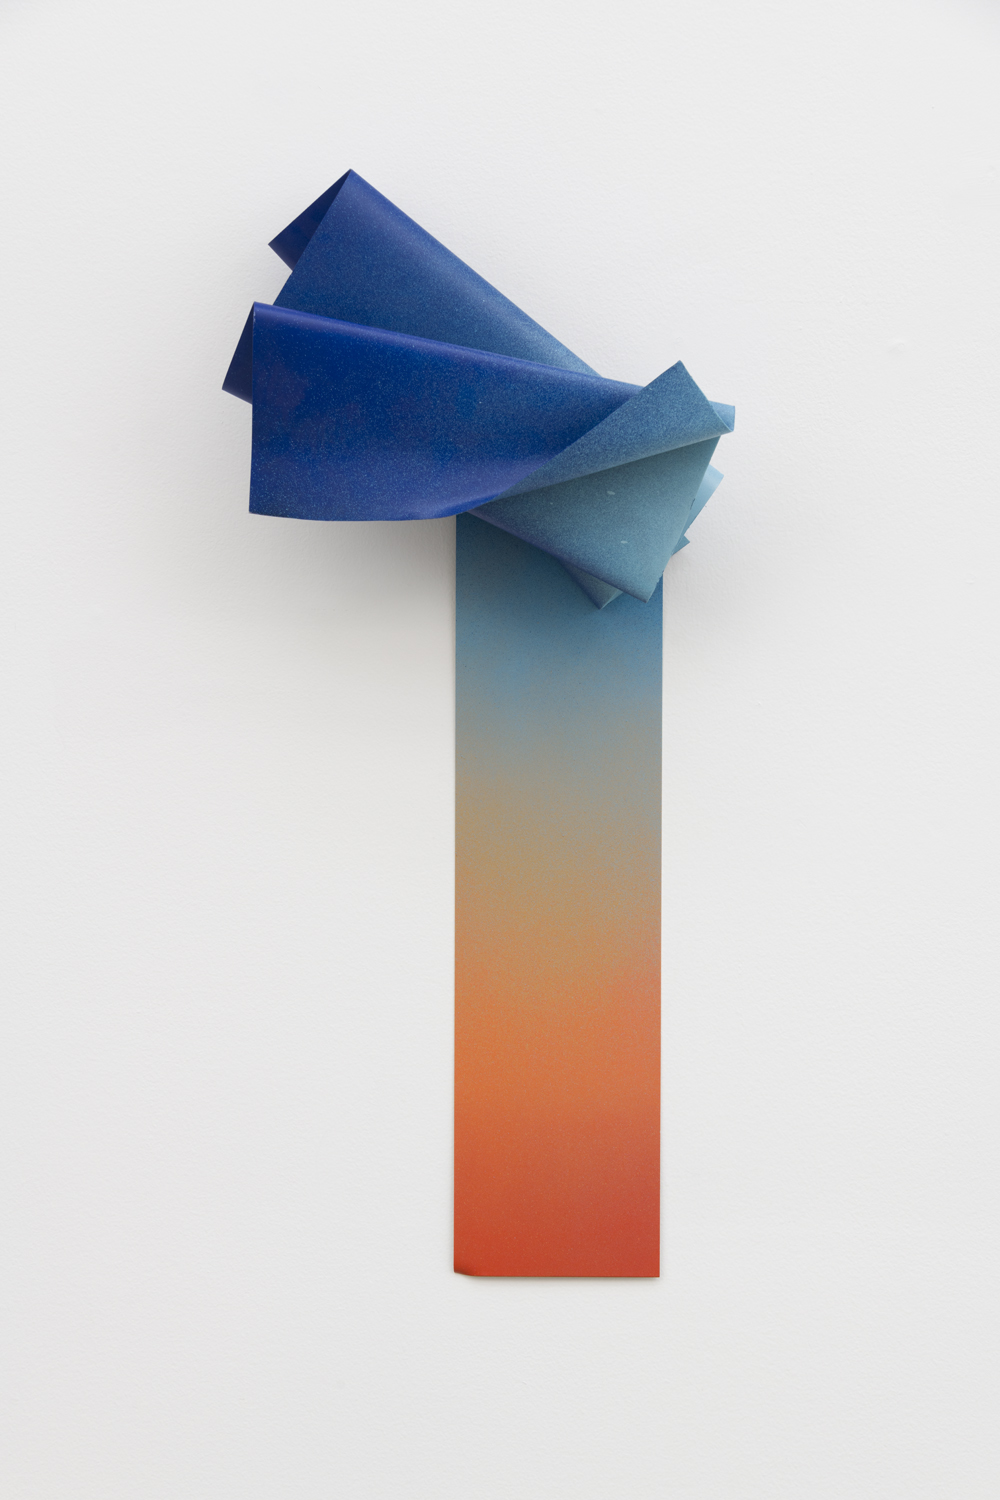 "Nora Shields, Threshold (Blue), 2018, acrylic and enamel on metal, 30 x 14 1/2 x 6""."